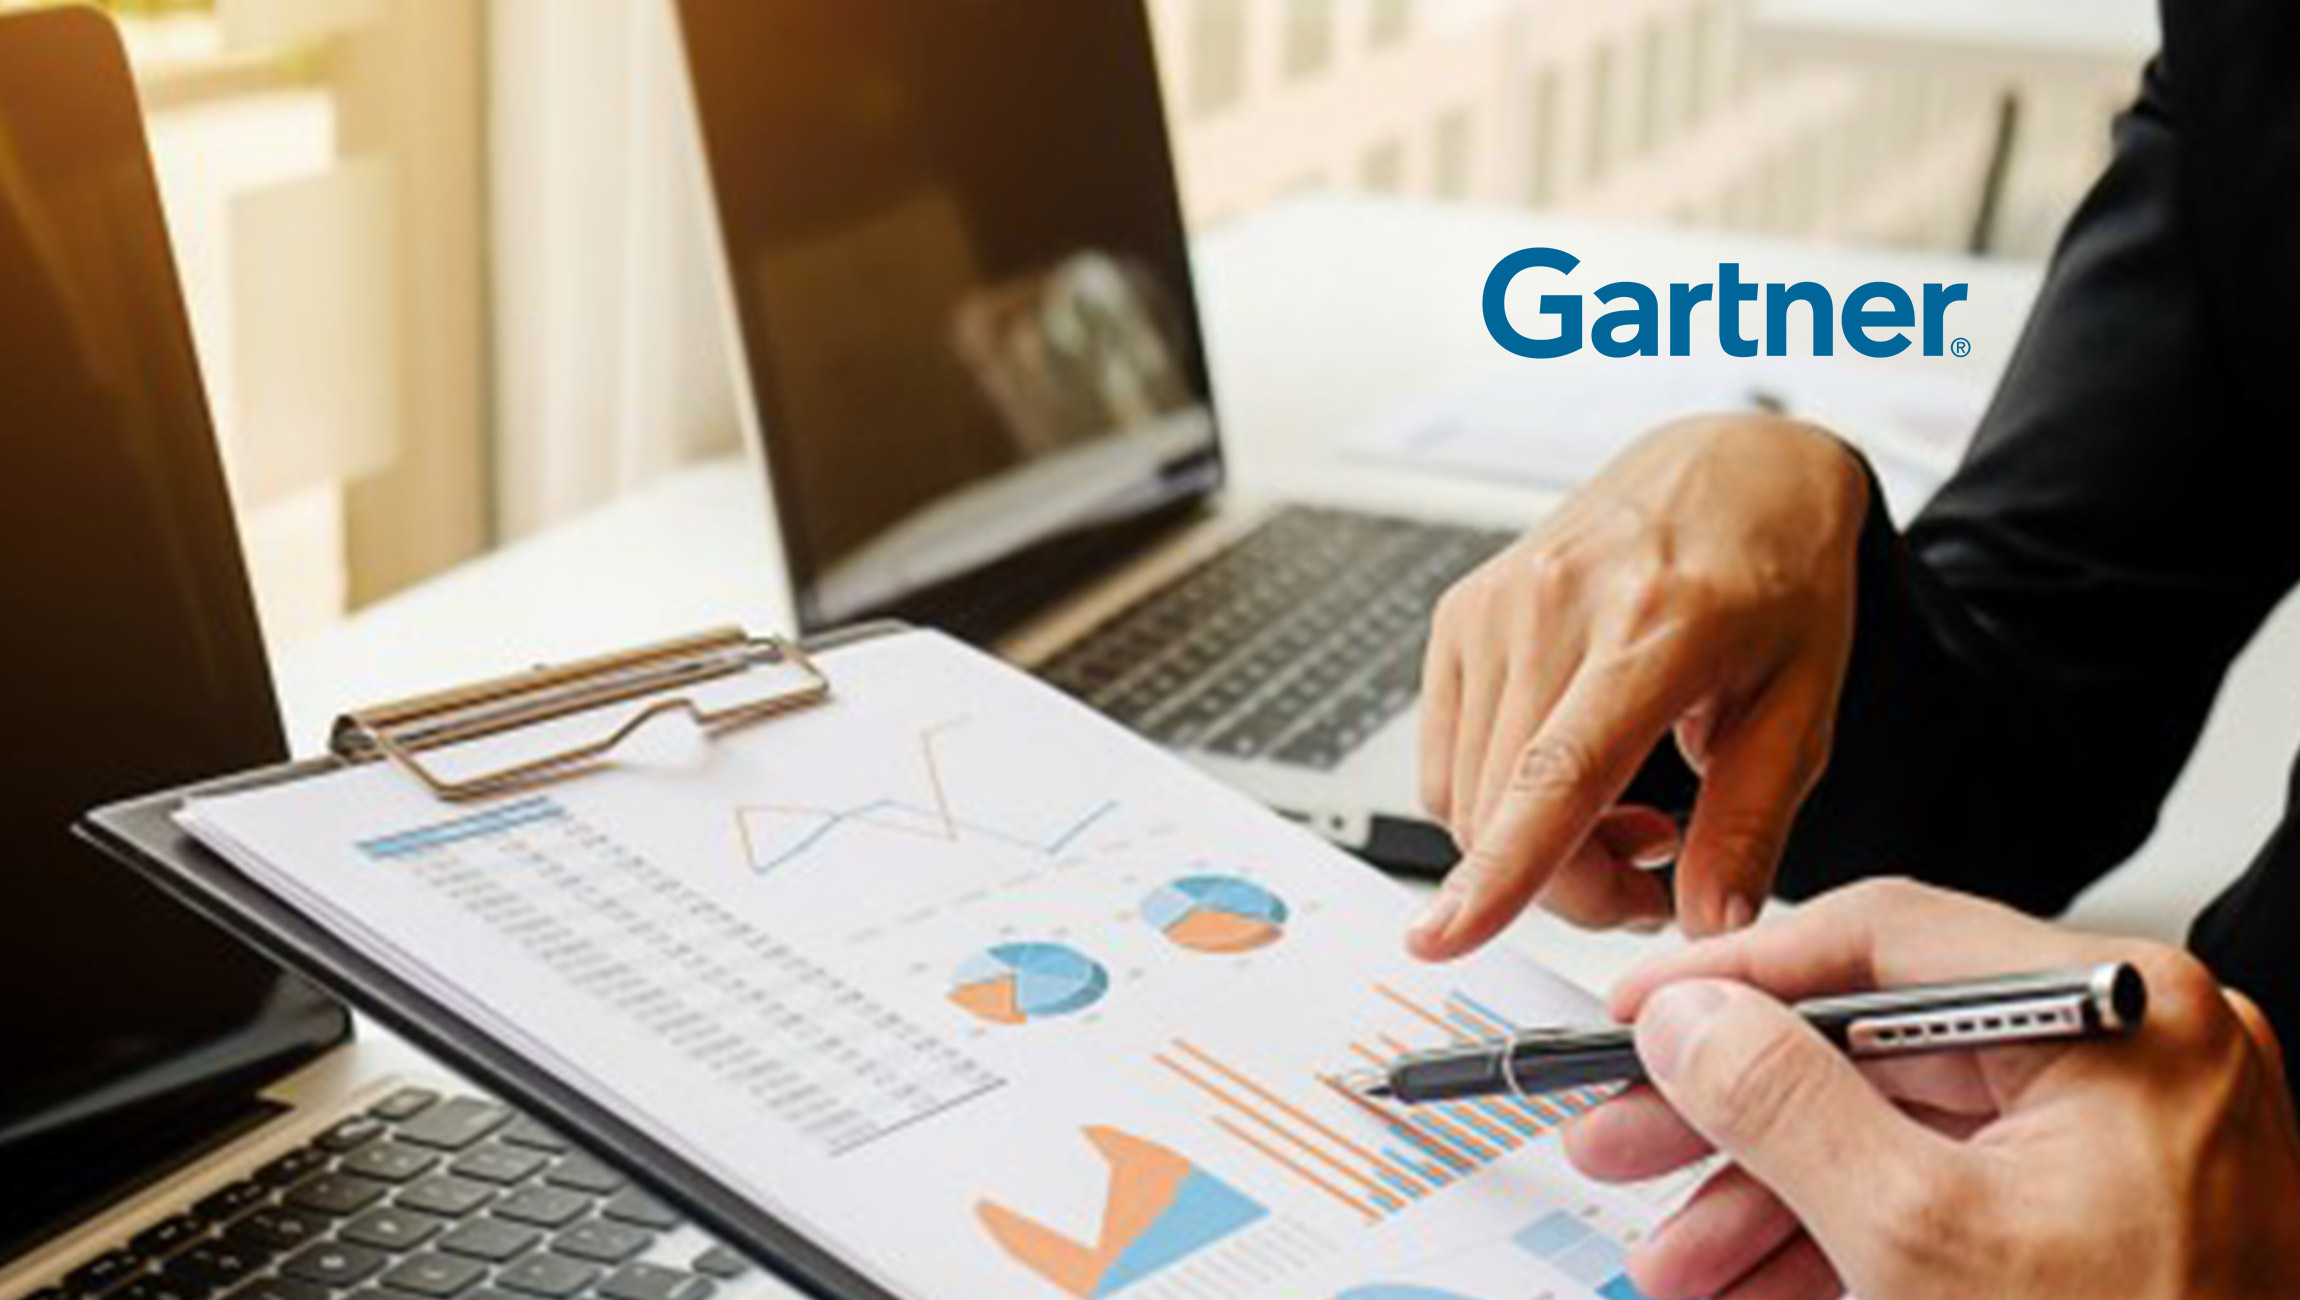 Gartner Suggests, Atomize Your Content to Drive Customer Experience and Personalization